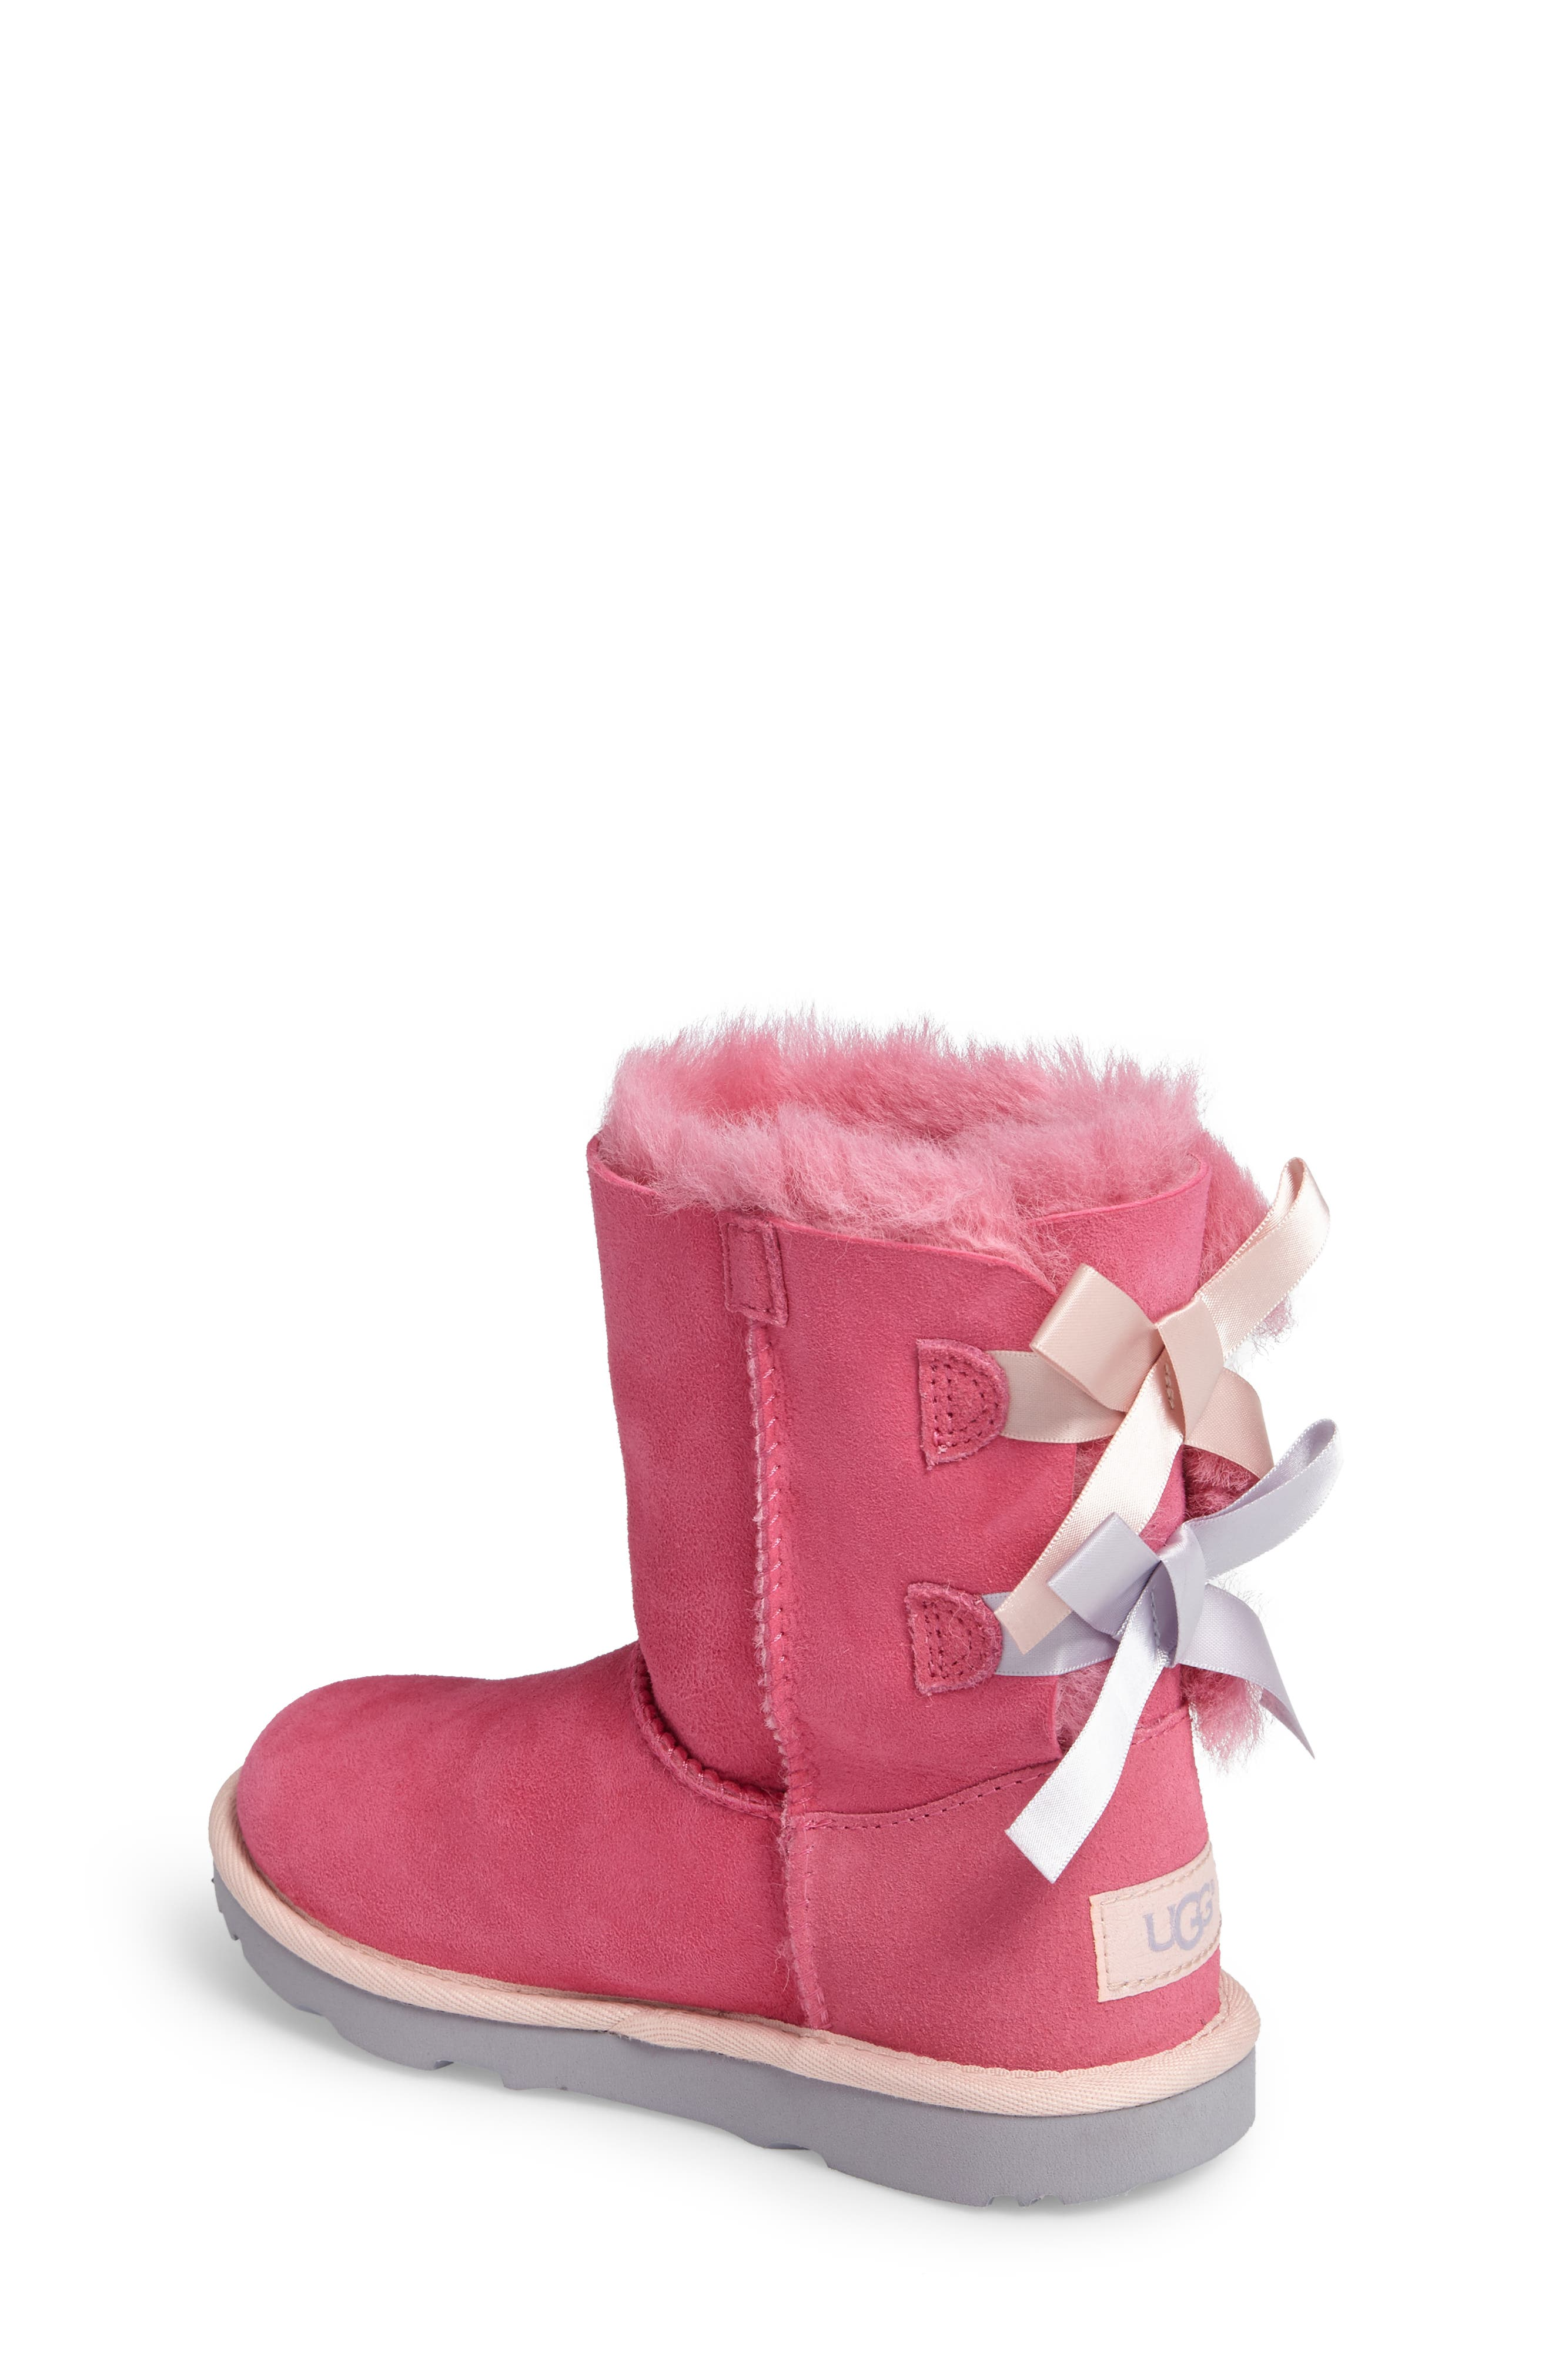 Bailey Bow II Water Resistant Genuine Shearling Boot,                             Alternate thumbnail 2, color,                             Pink/ Blue Suede